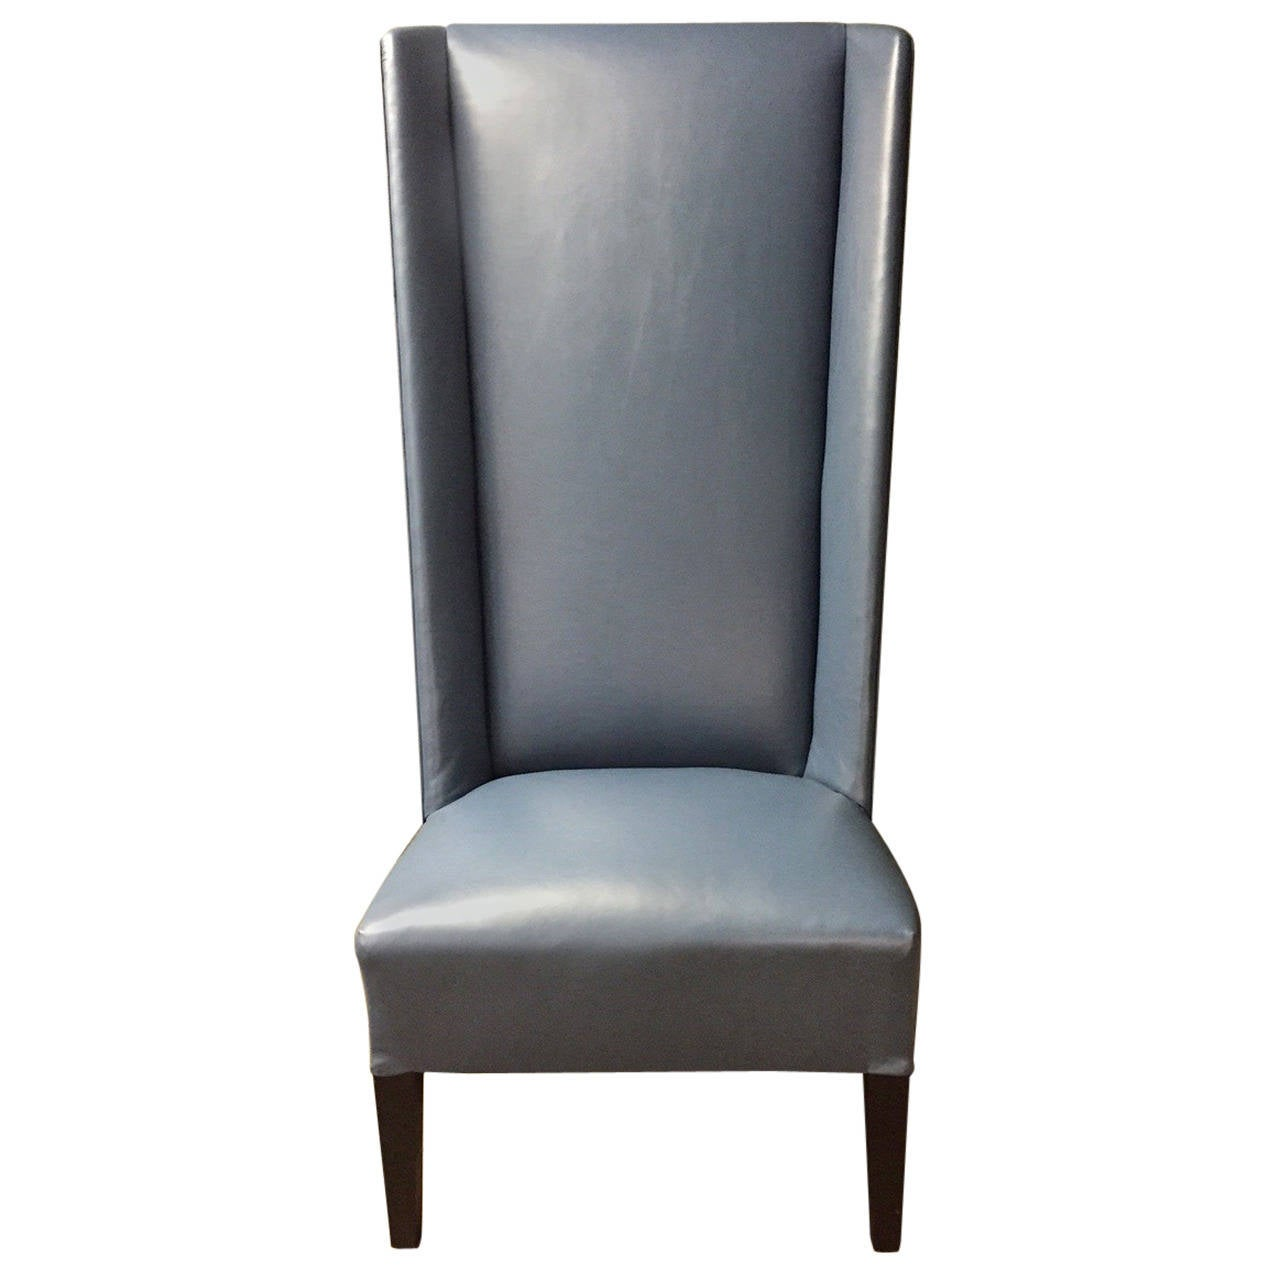 Italian Leather High Back Chair For Sale At 1stdibs